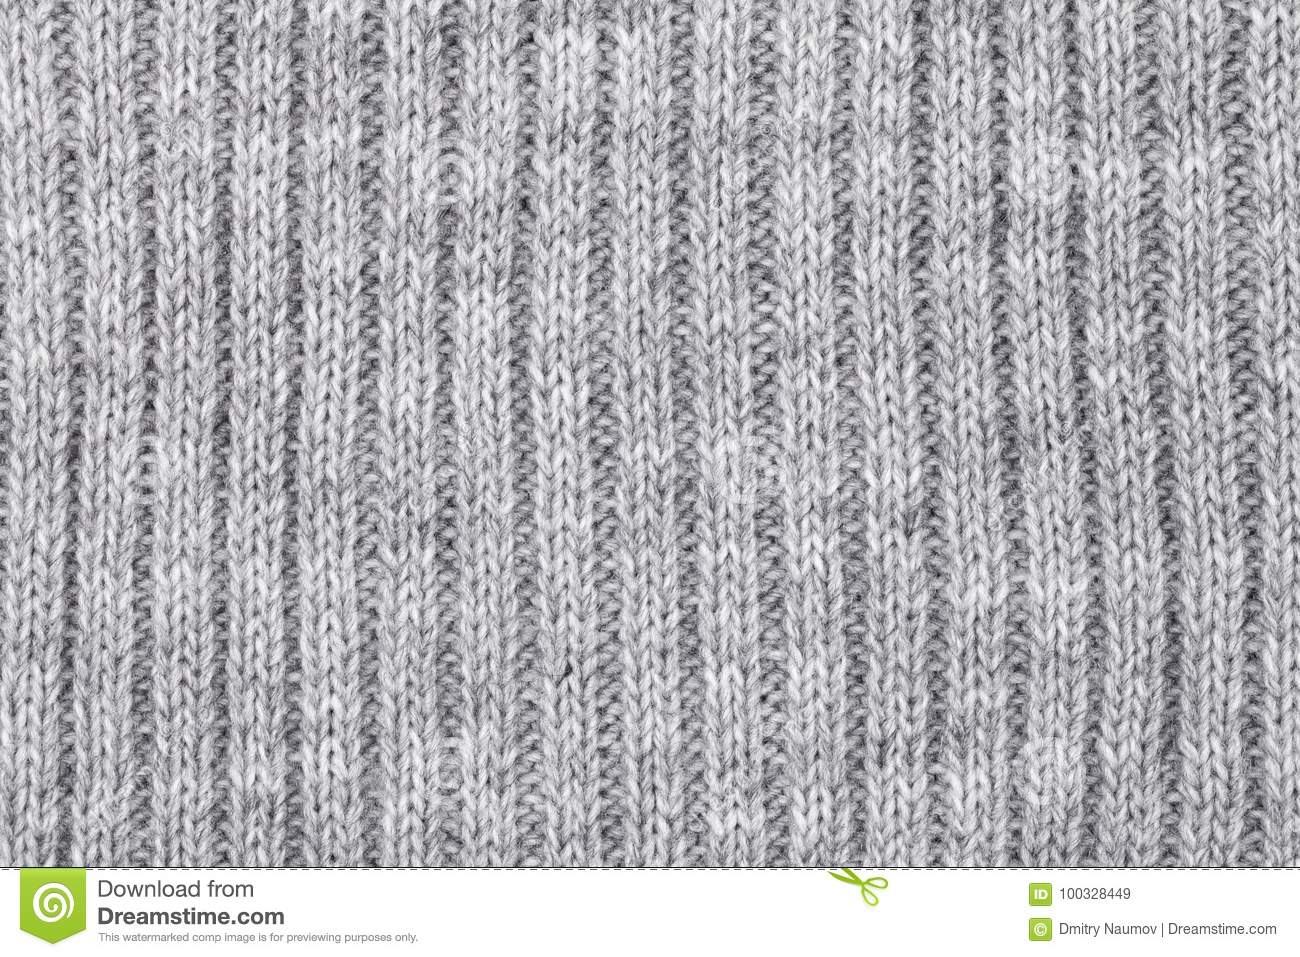 b8c56a64f9f7a8 Knitted Melange Textile Pattern Stock Image - Image of polyester ...